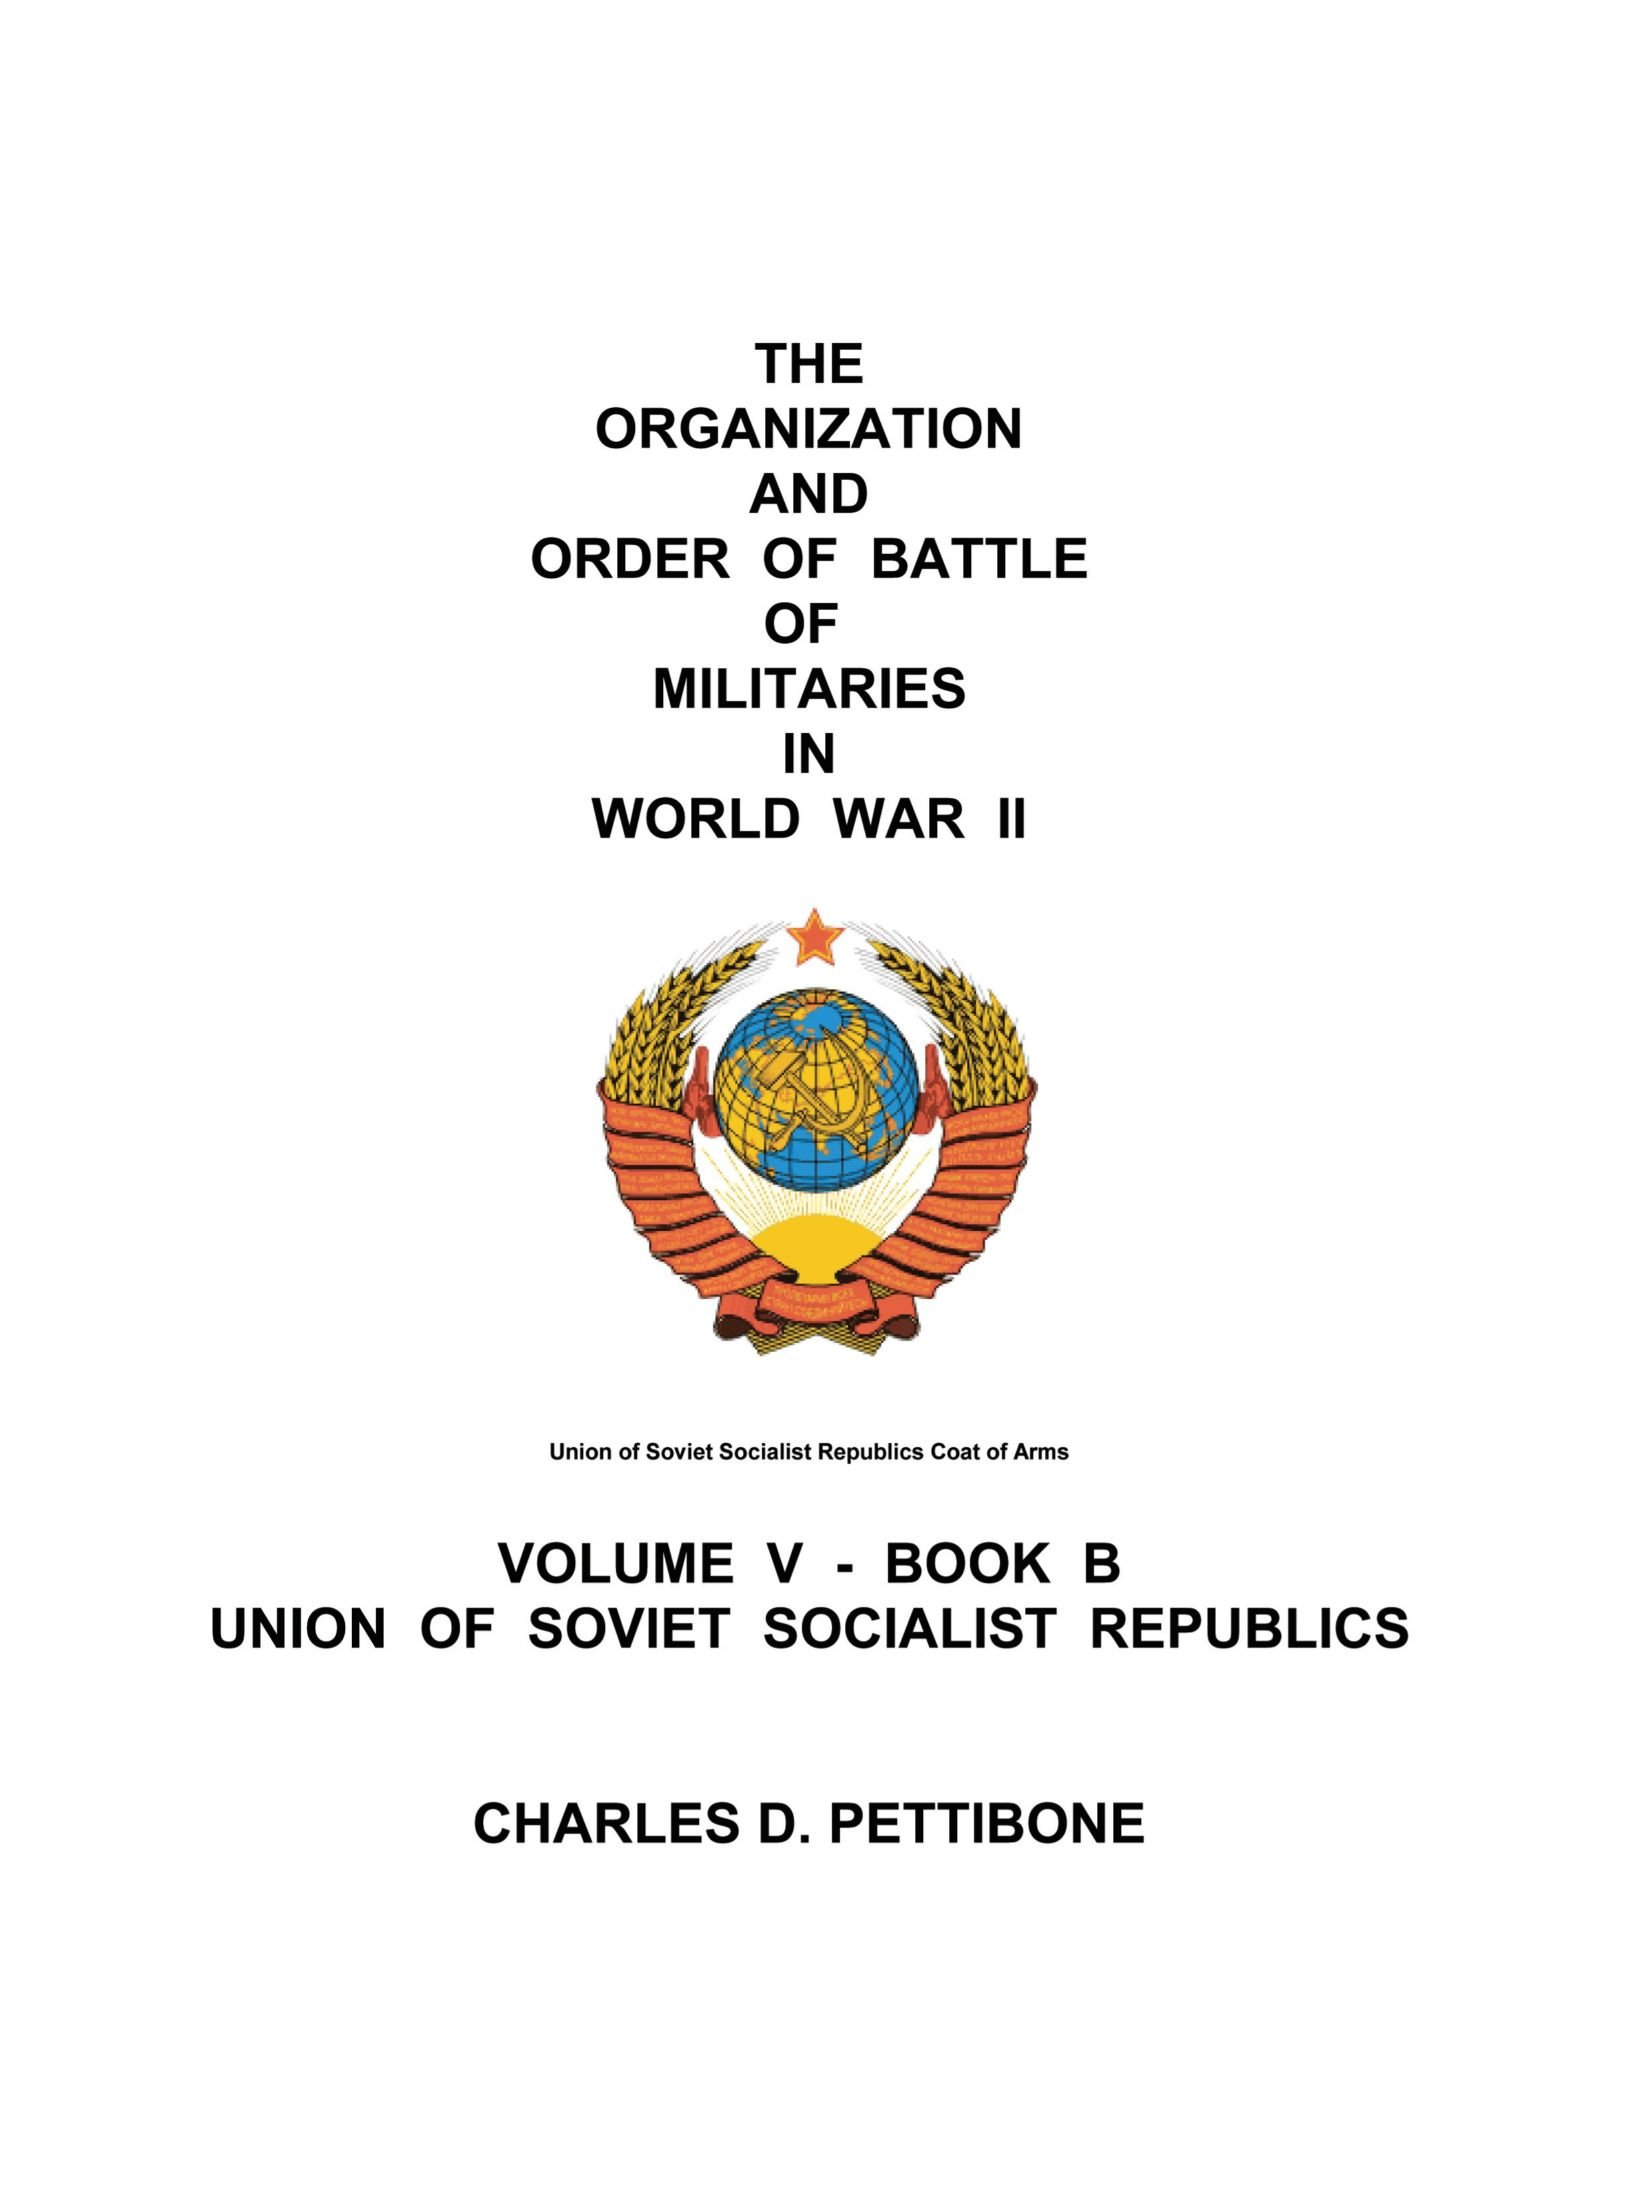 The Organization and Order of Battle of Militaries in World War II: Volume V - Book B Union of Soviet Socialist Republics pdf